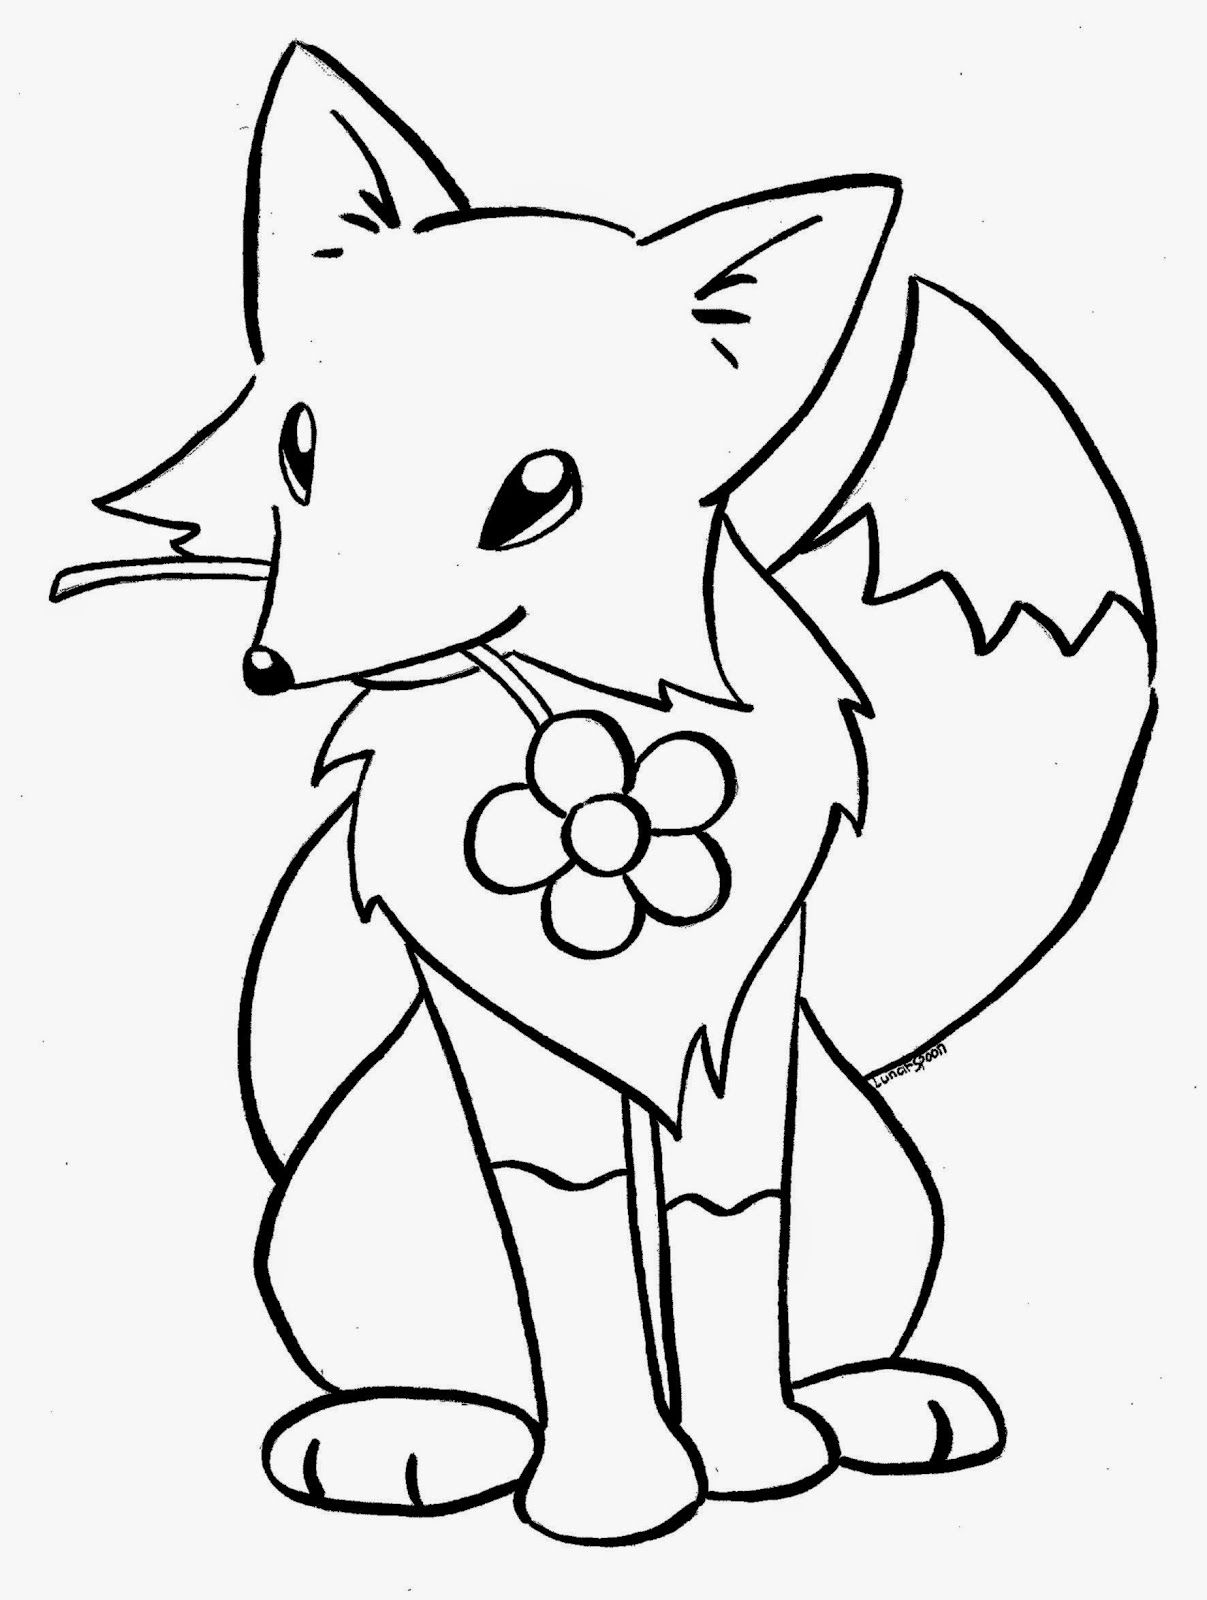 Coloring pages animal jam - Coloring Books Child Development Buscar Con Google Animal Coloring Pagescoloring